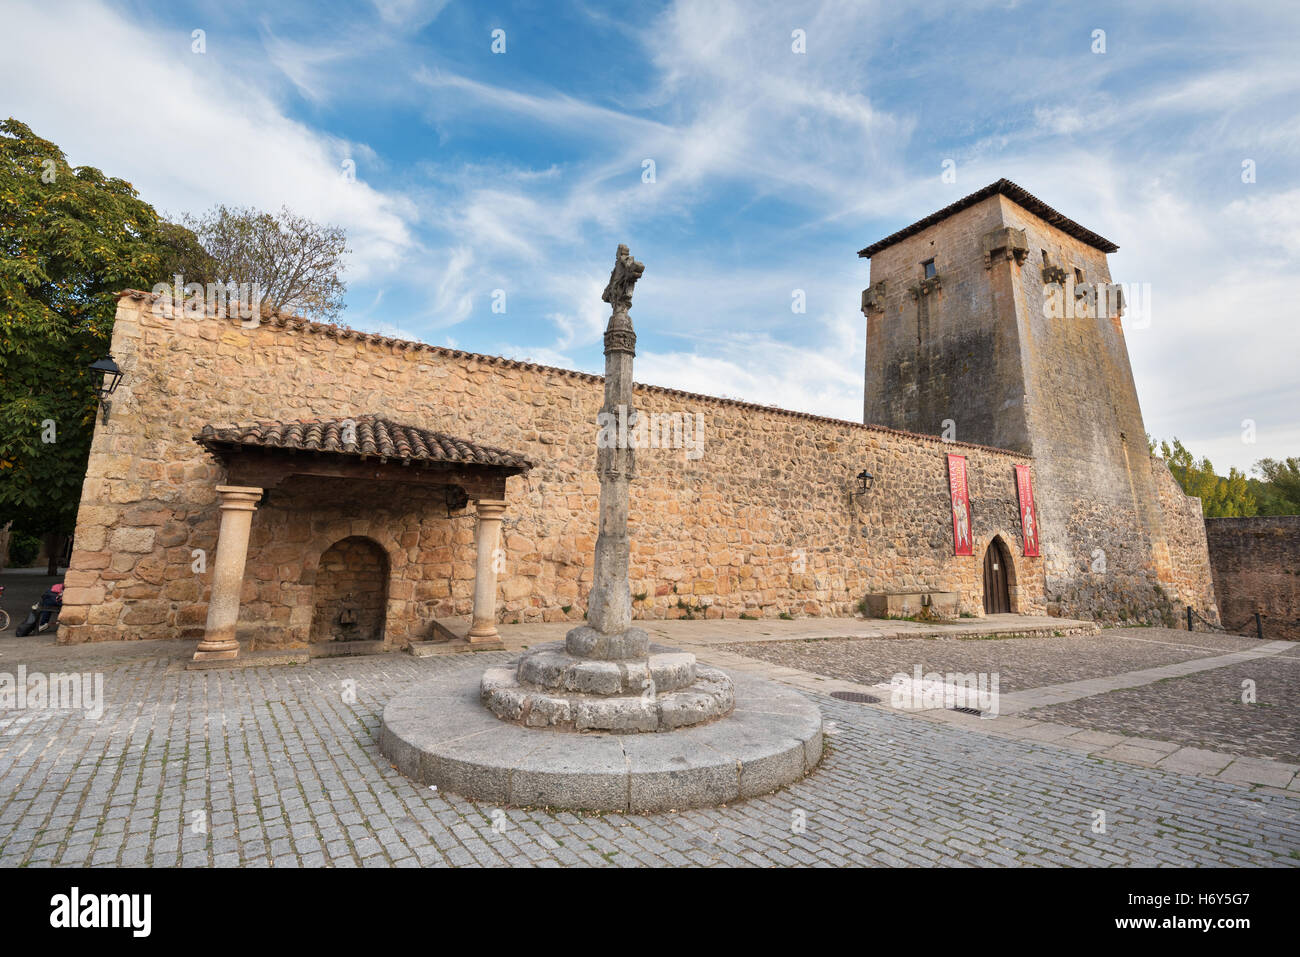 COVARRUBIAS, SPAIN - OCTOBER 11: Tower and ancient fortress on October 11,2016 in the ancient medieval village of - Stock Image